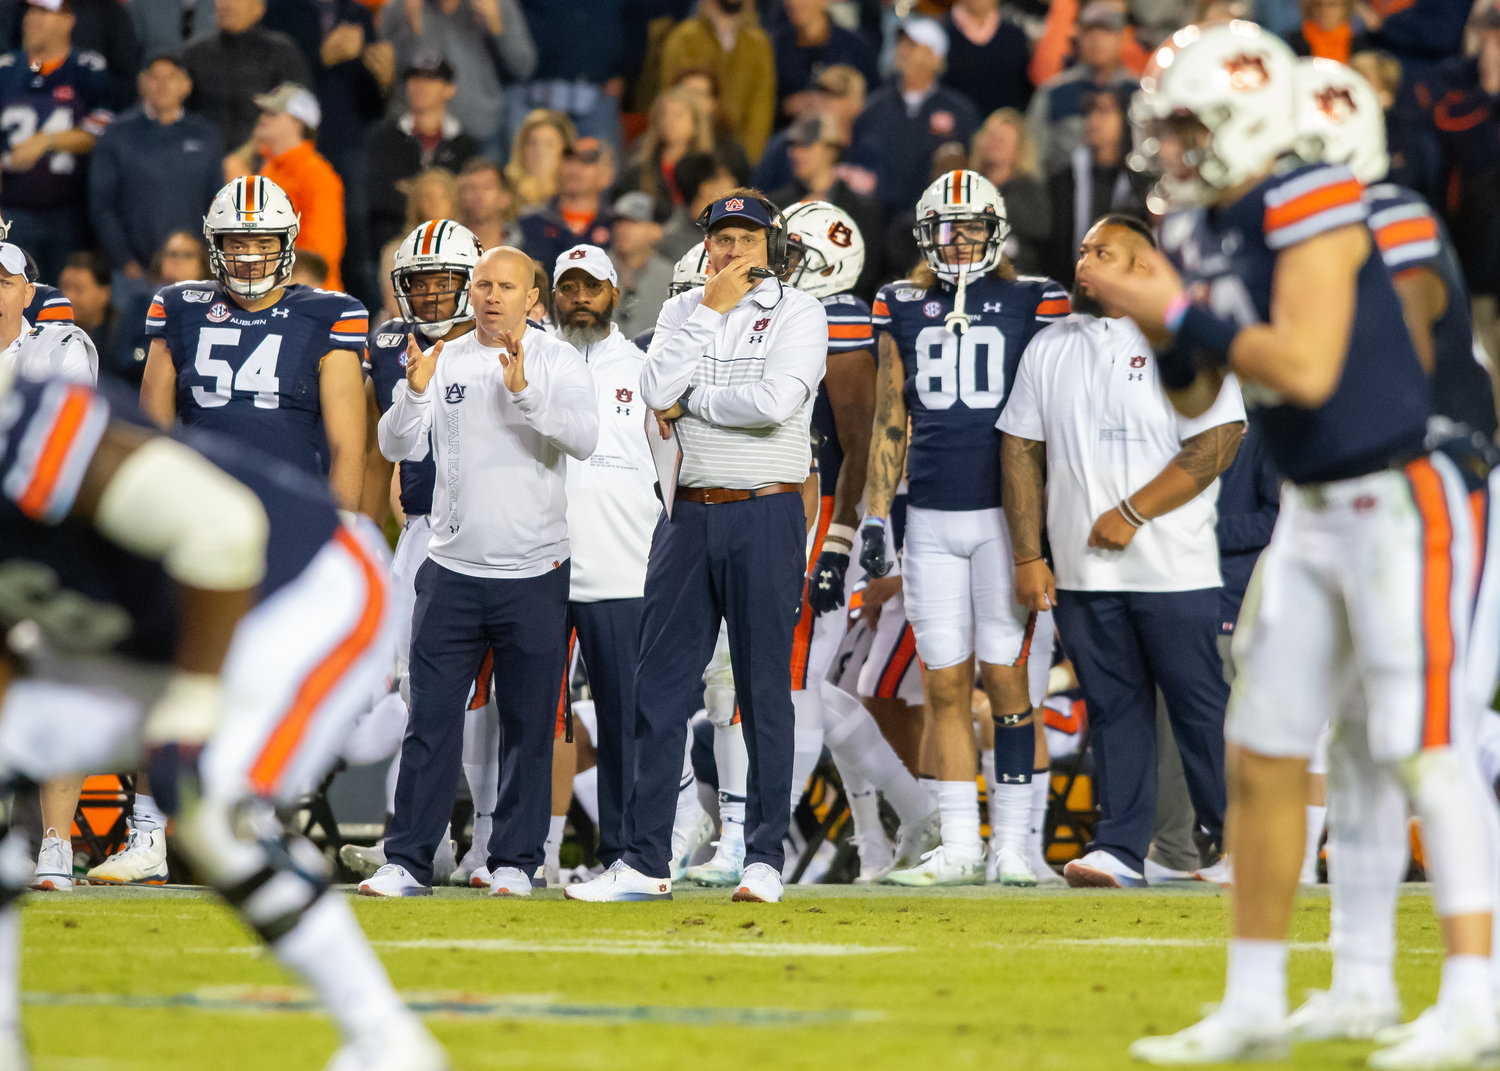 Auburn Tigers head coach Gus Malzahn and offensive coordinator Kenny Dillingham look on during the second half of Saturday's game, at Jordan-Hare Stadium in Auburn,, AL. Daily Mountain Eagle -  Jeff Johnsey